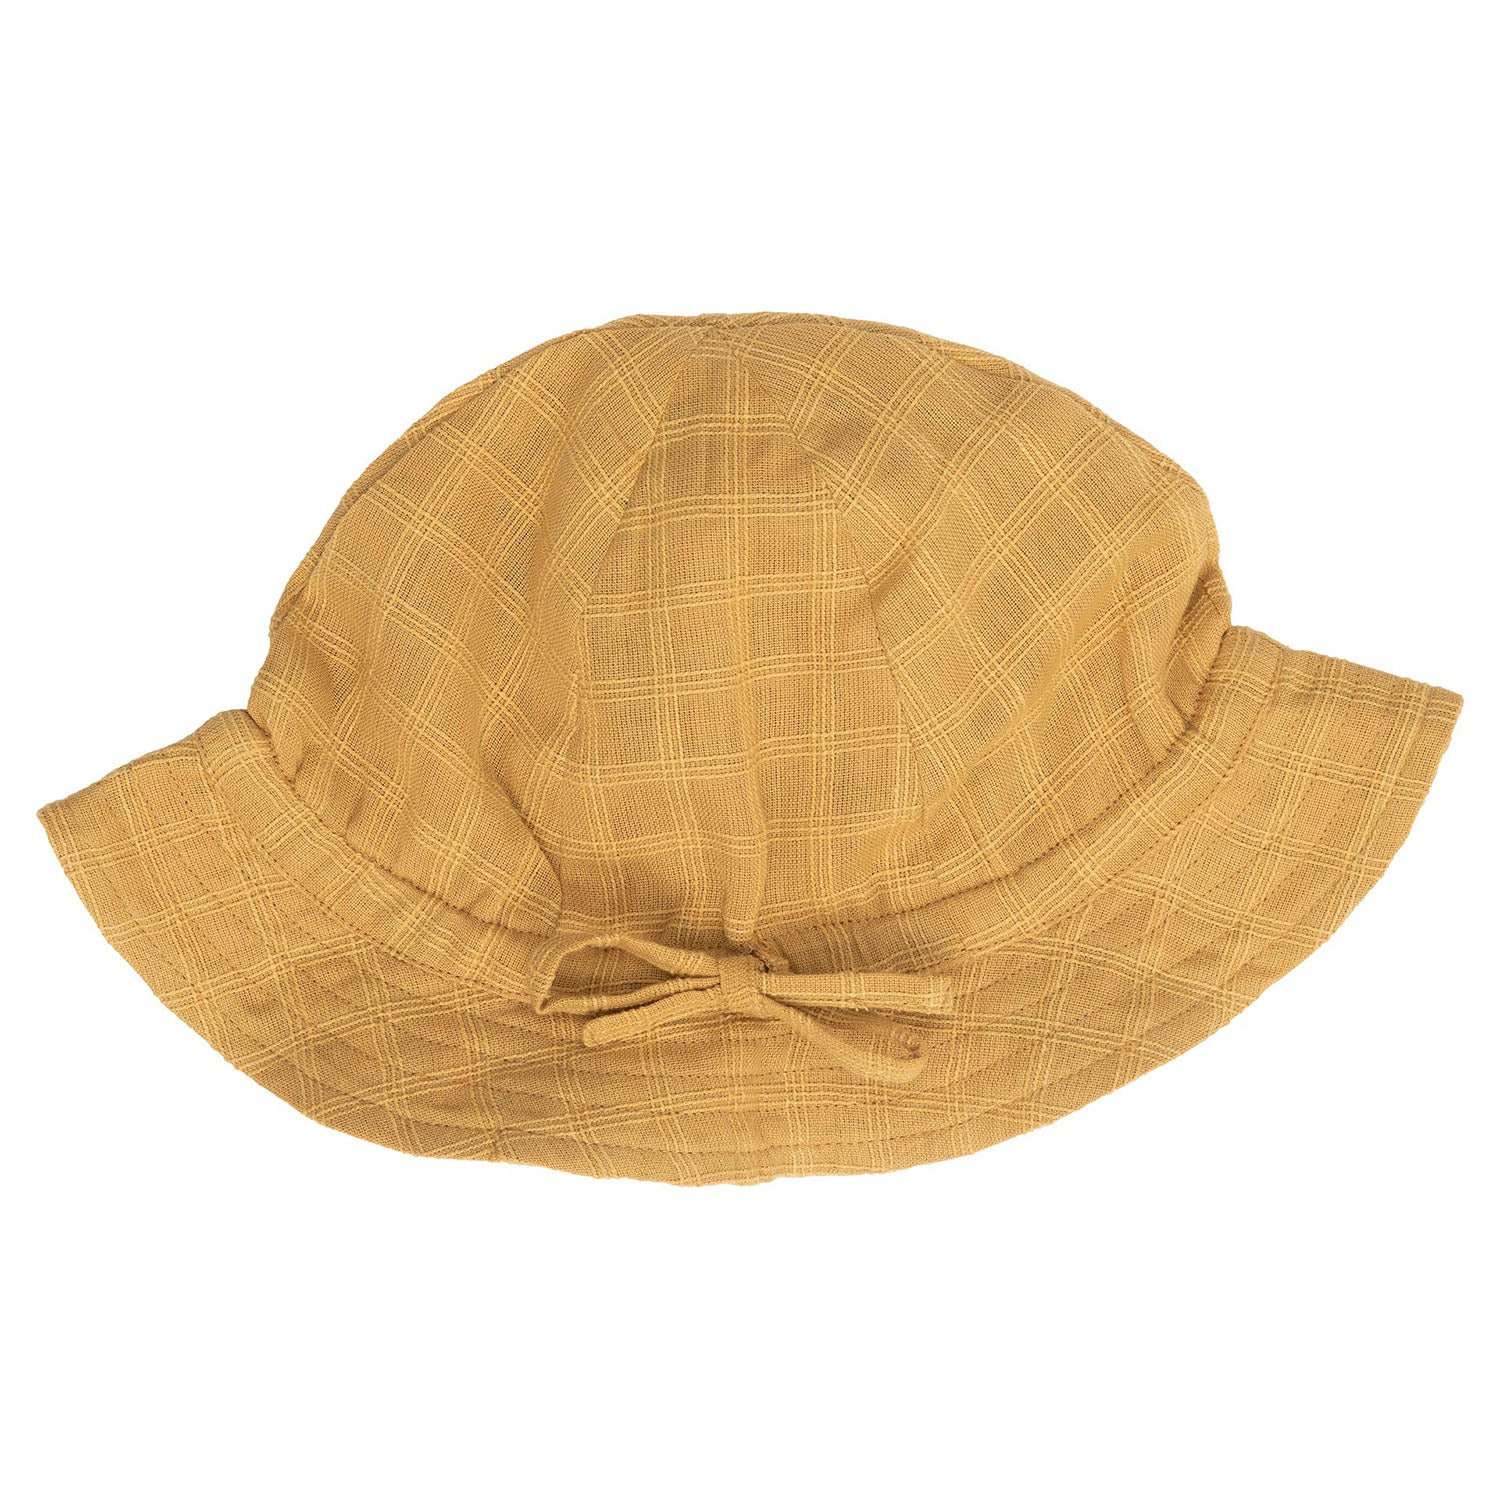 Image of   Serendipity sommerhat, barn - Golden Checks